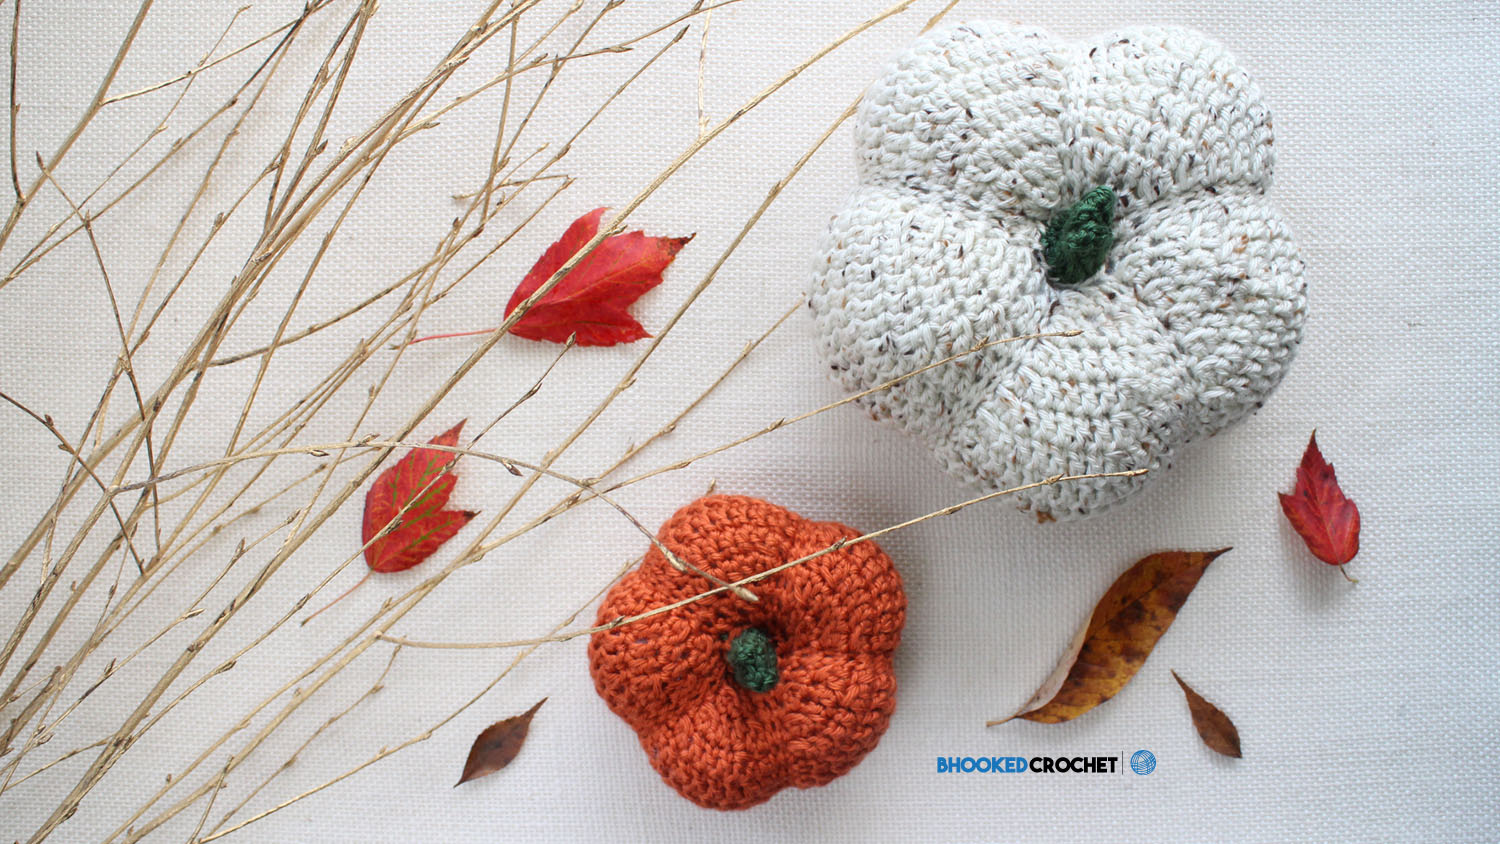 How to Crochet Pumpkins from Yarnspirations